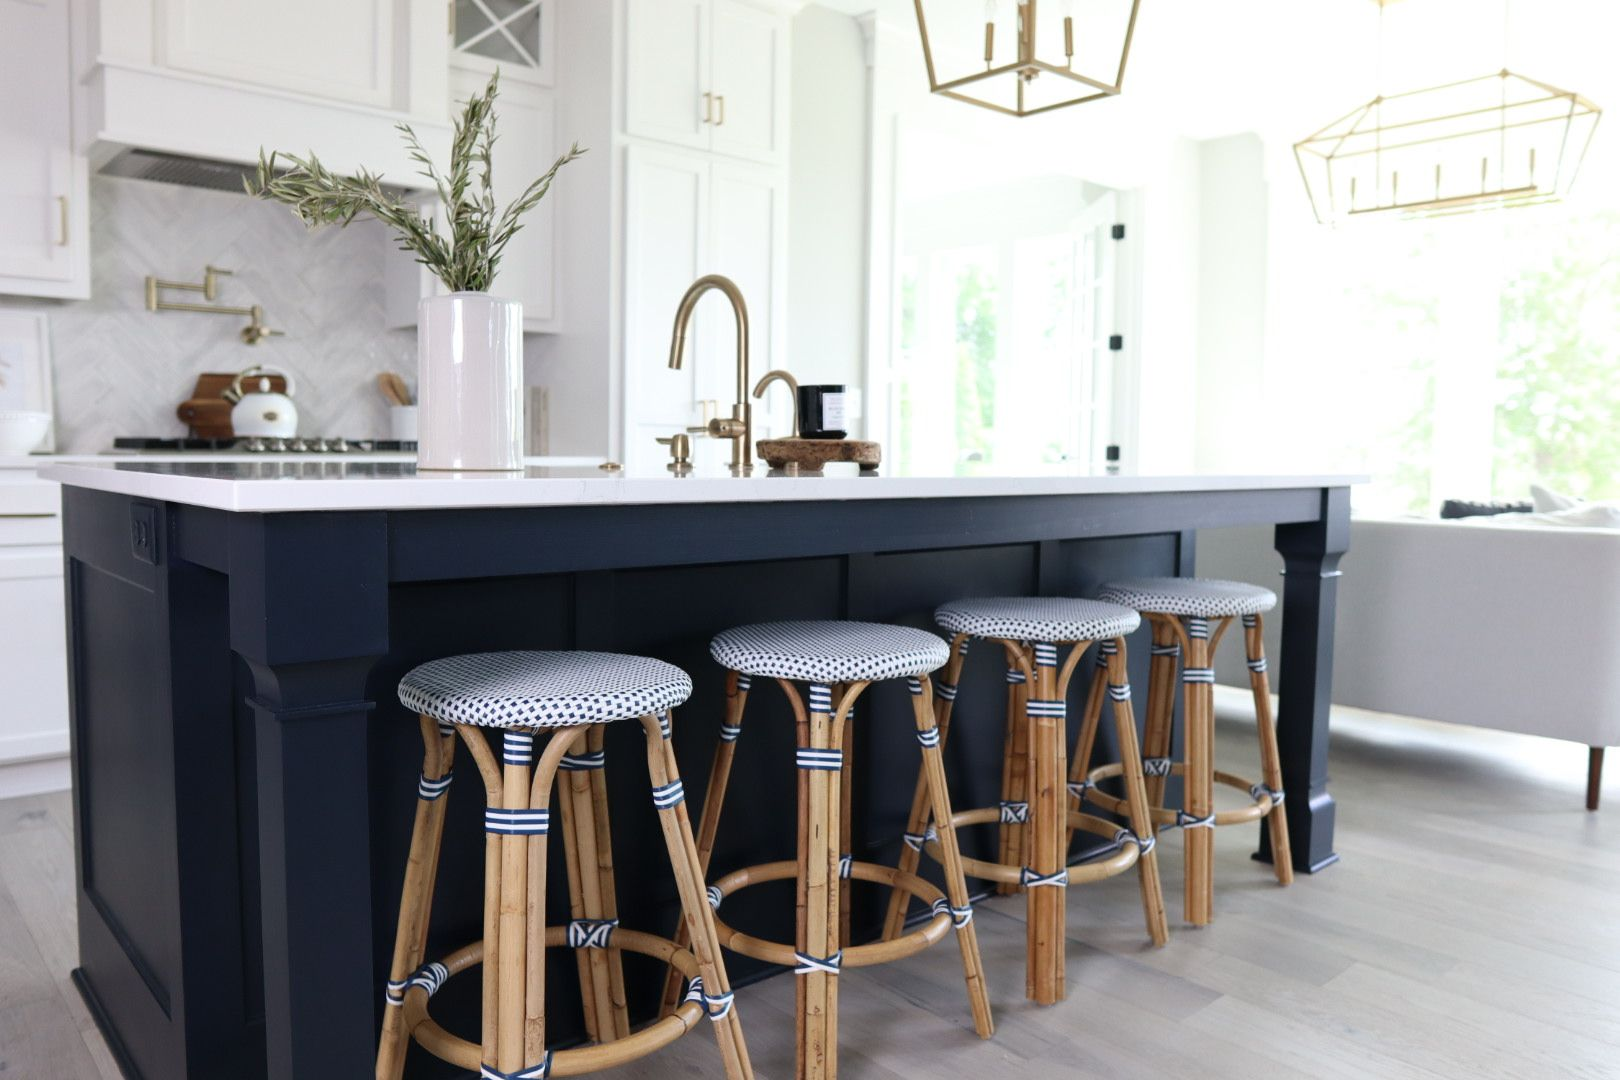 Best Navy Color For Kitchen Island